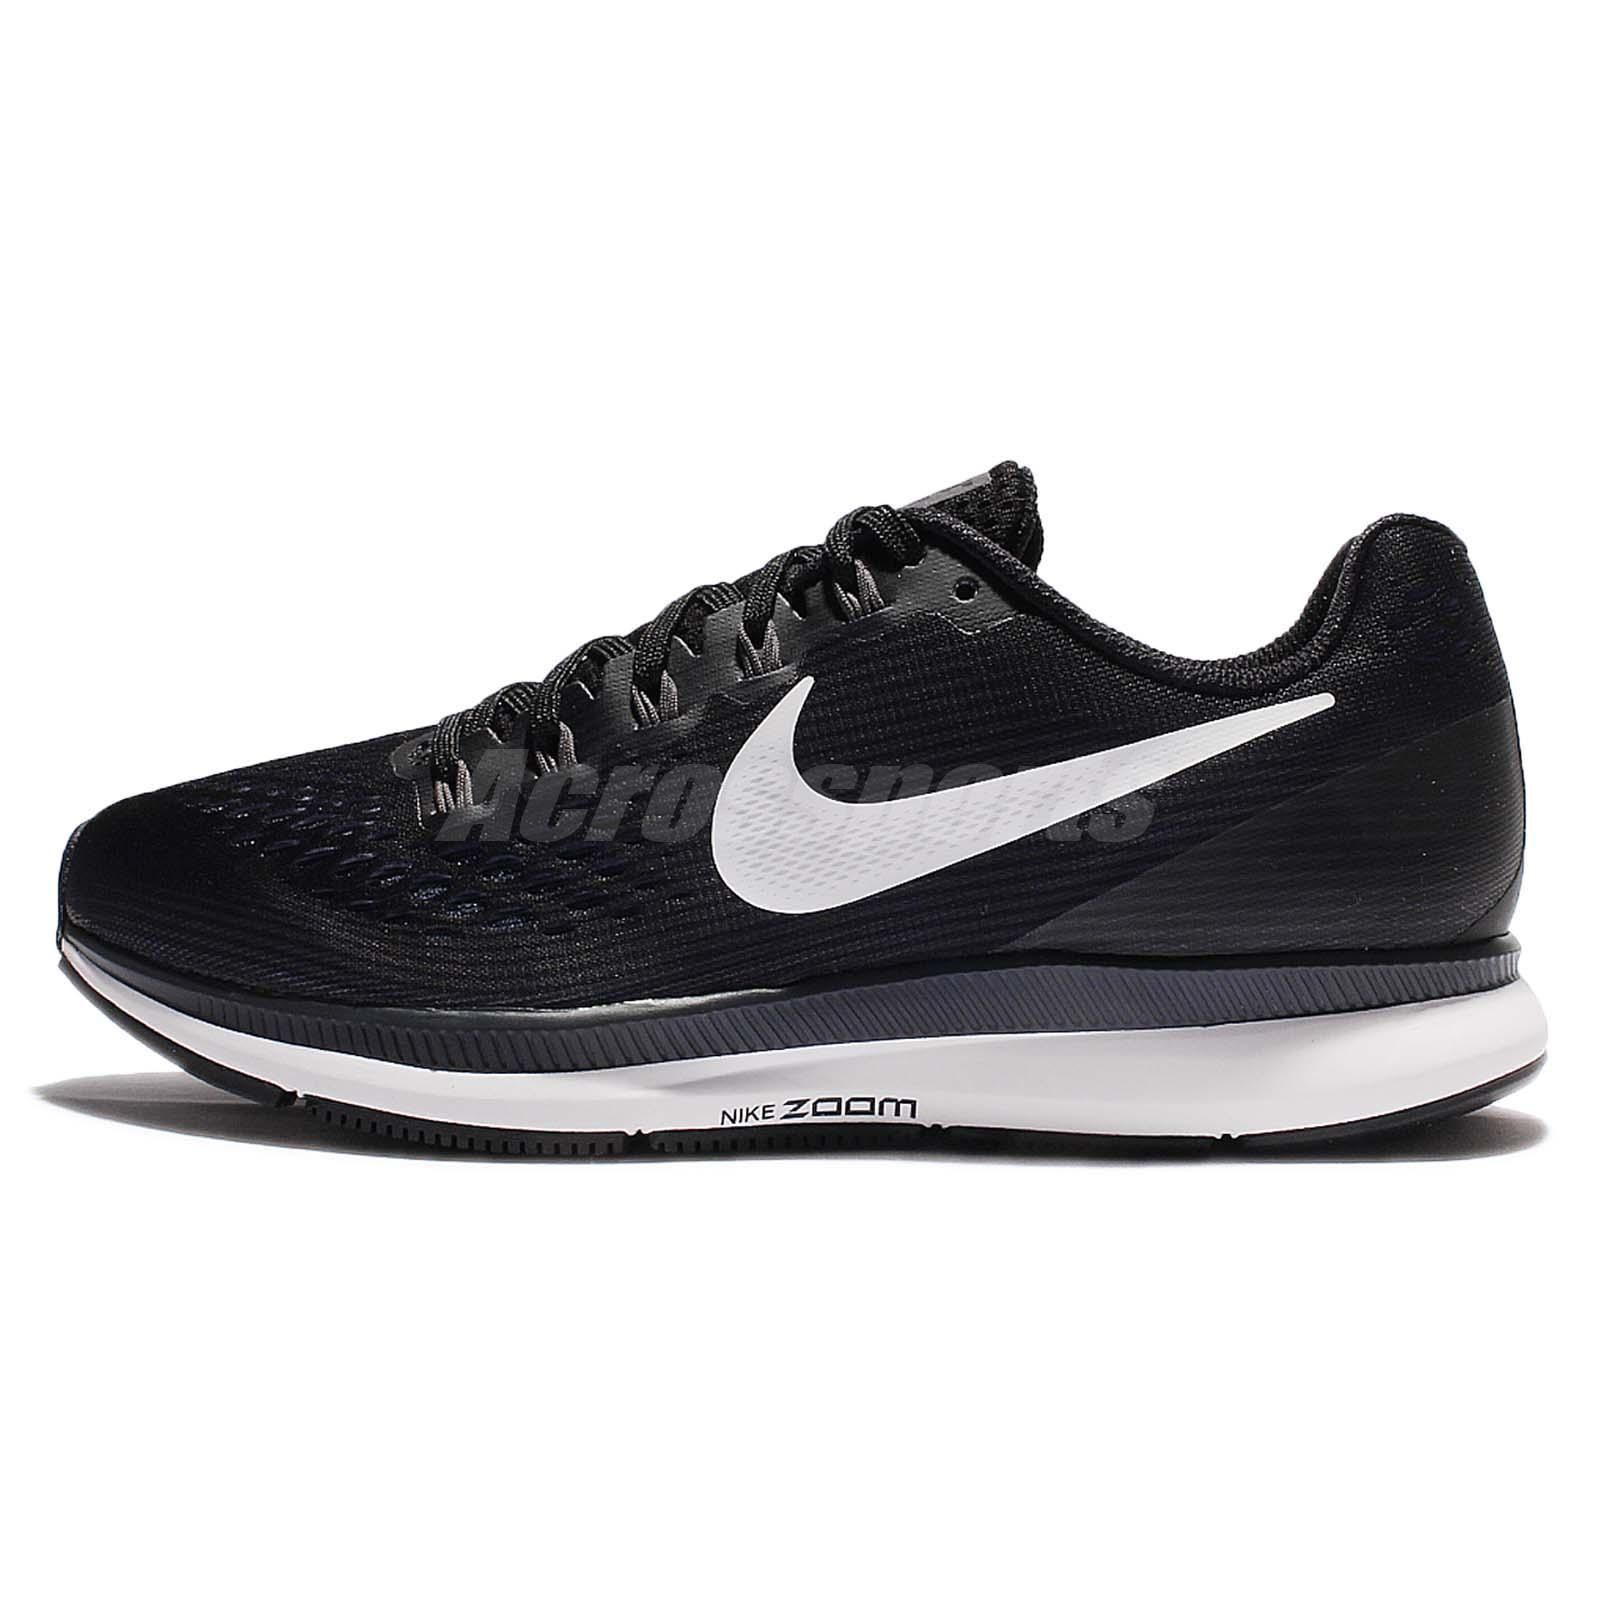 c8c2aedd780 Nike W Air Zoom Pegasus 34 Black White Women Running Shoes Sneaker 880560- 001